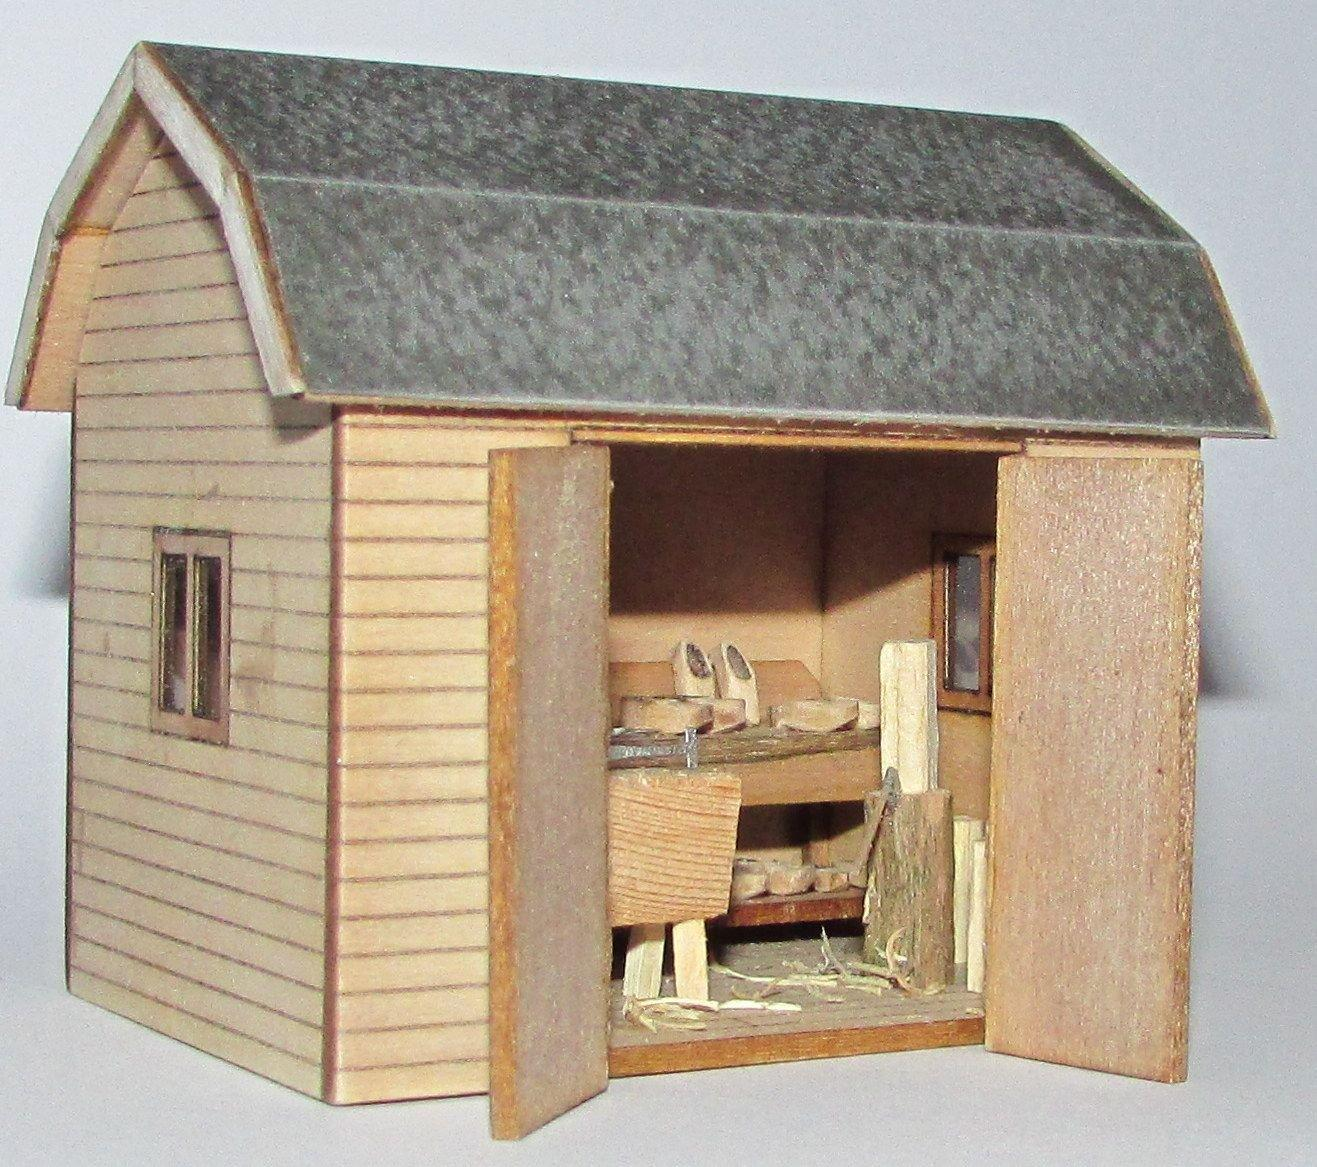 Quarter scale Dutch Workshop or Shed Kit